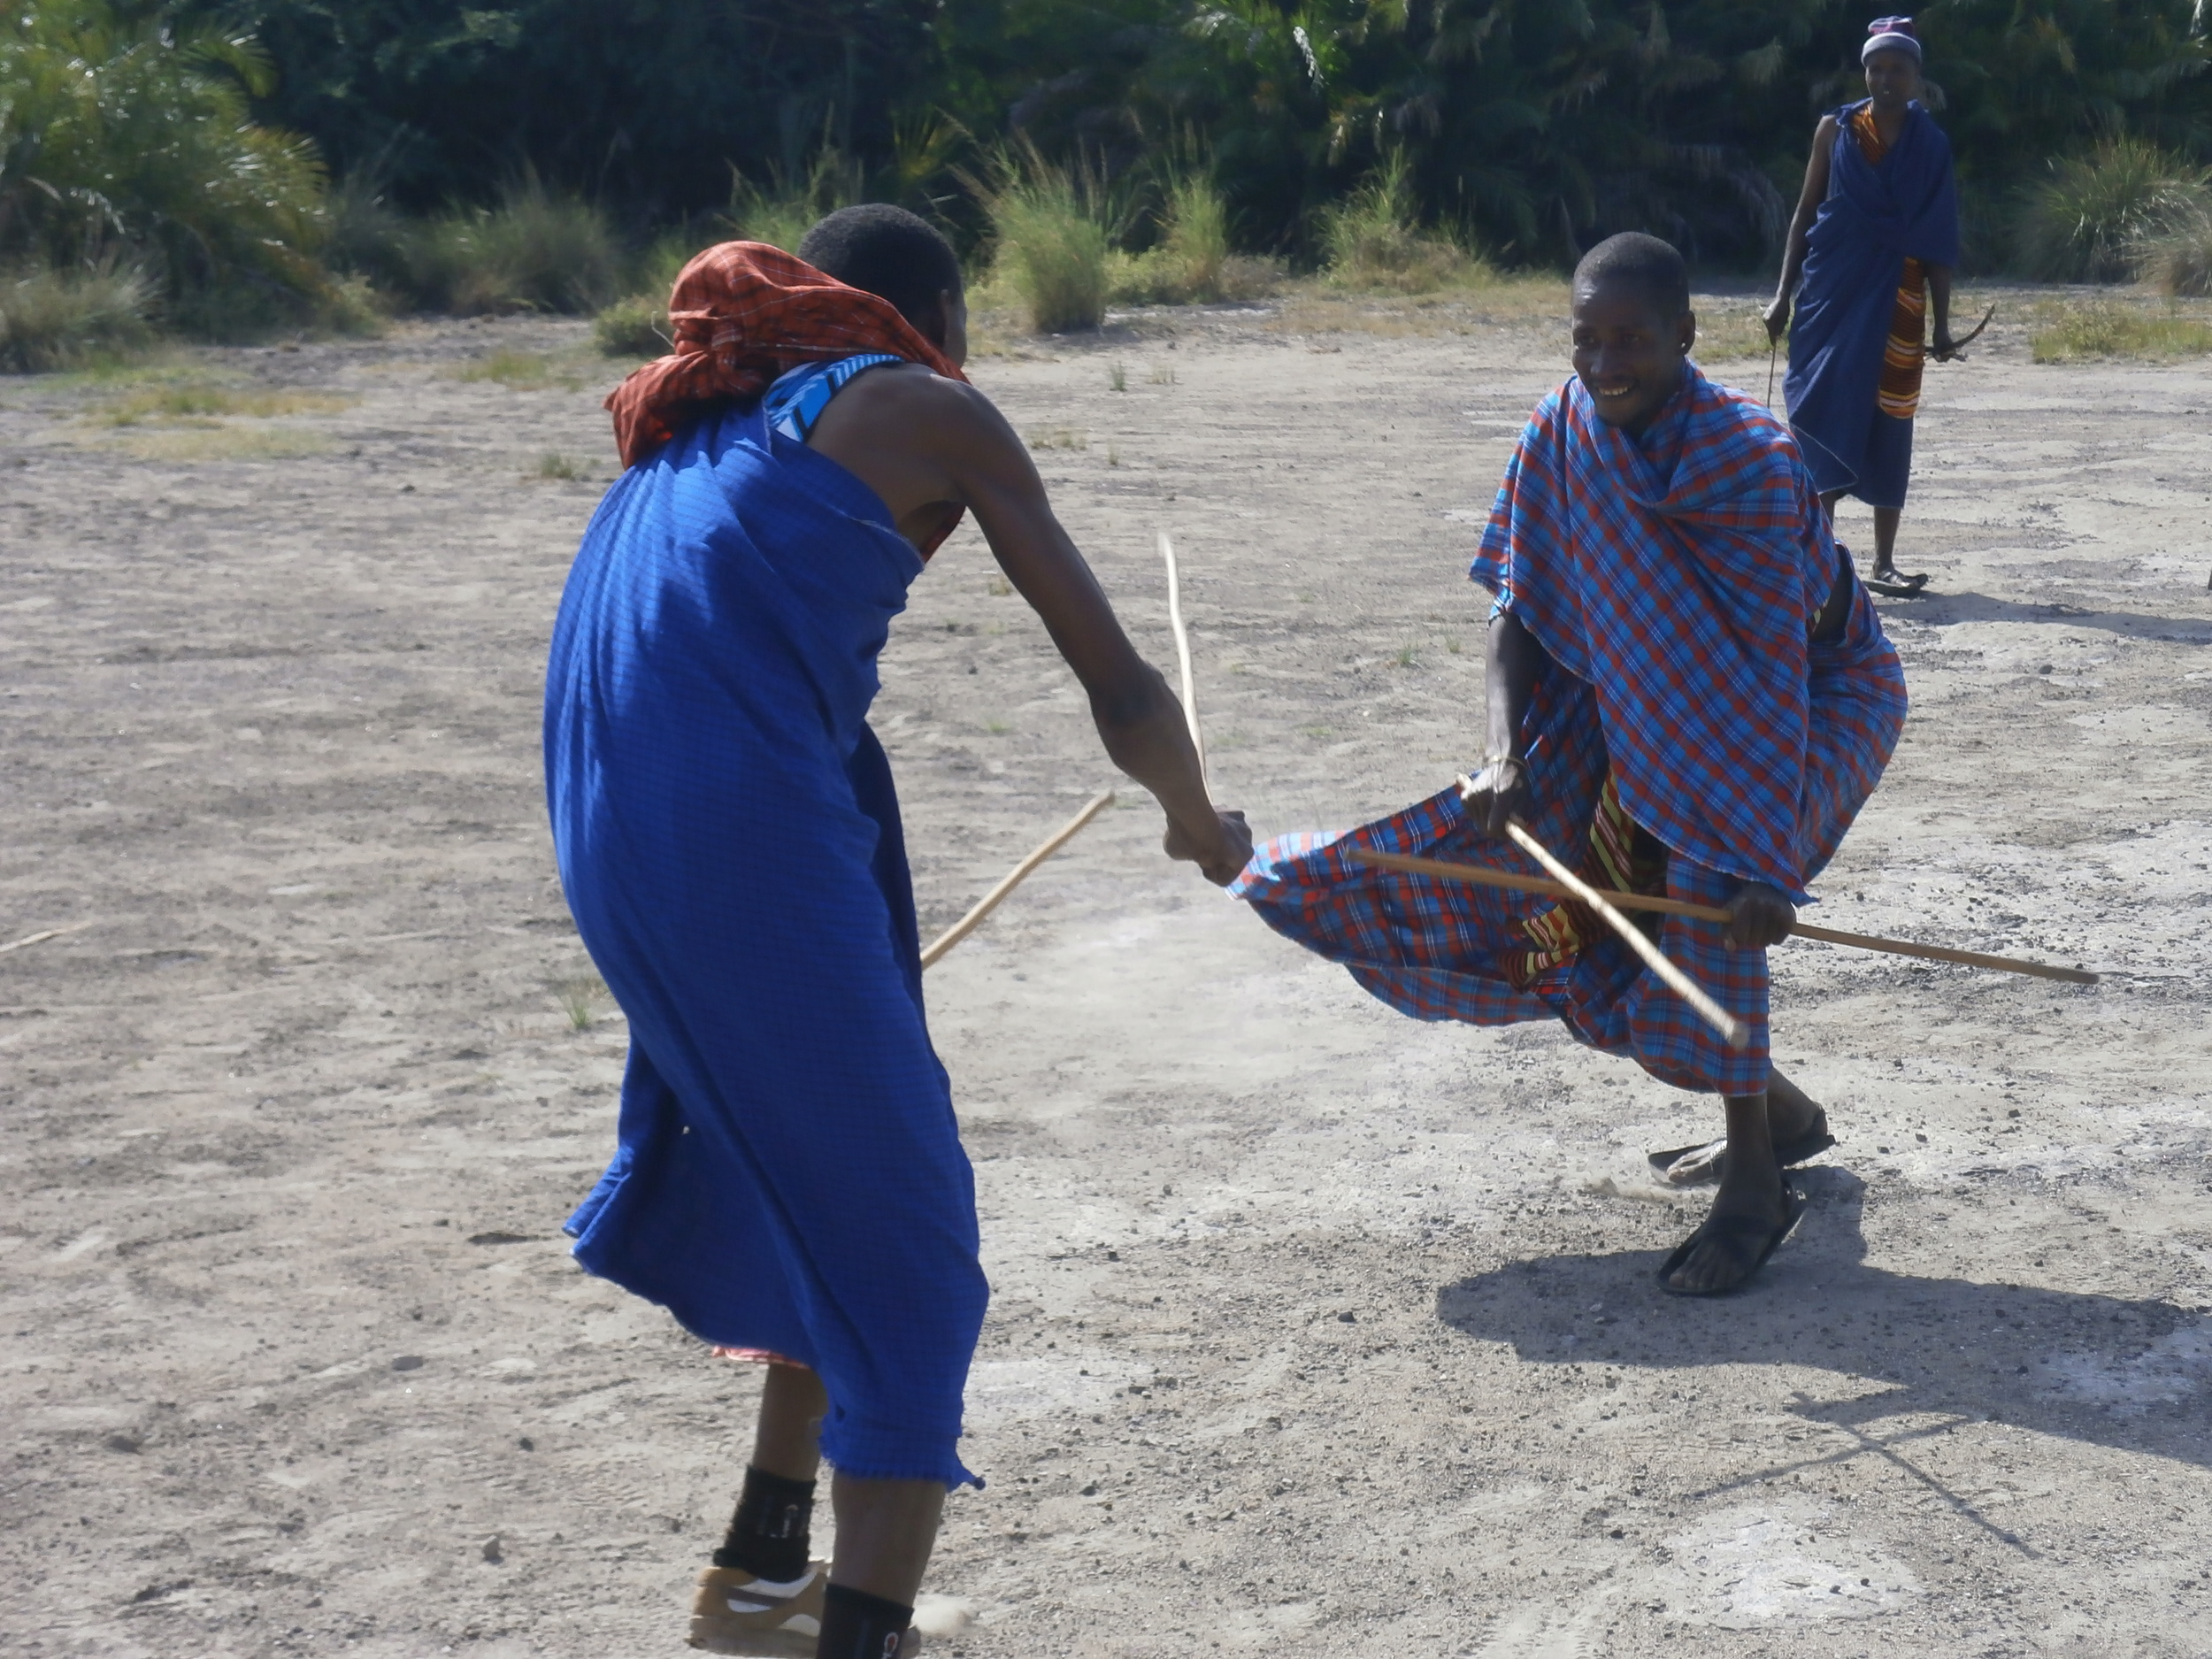 'OUCH' THAT HURT!     TWO MAASAI MORAN WARRIORS COMPETE WITH THEIR TRADITIONAL 'STICK' FIGHTING.  LAST ONE STANDING IS THE WINNER.